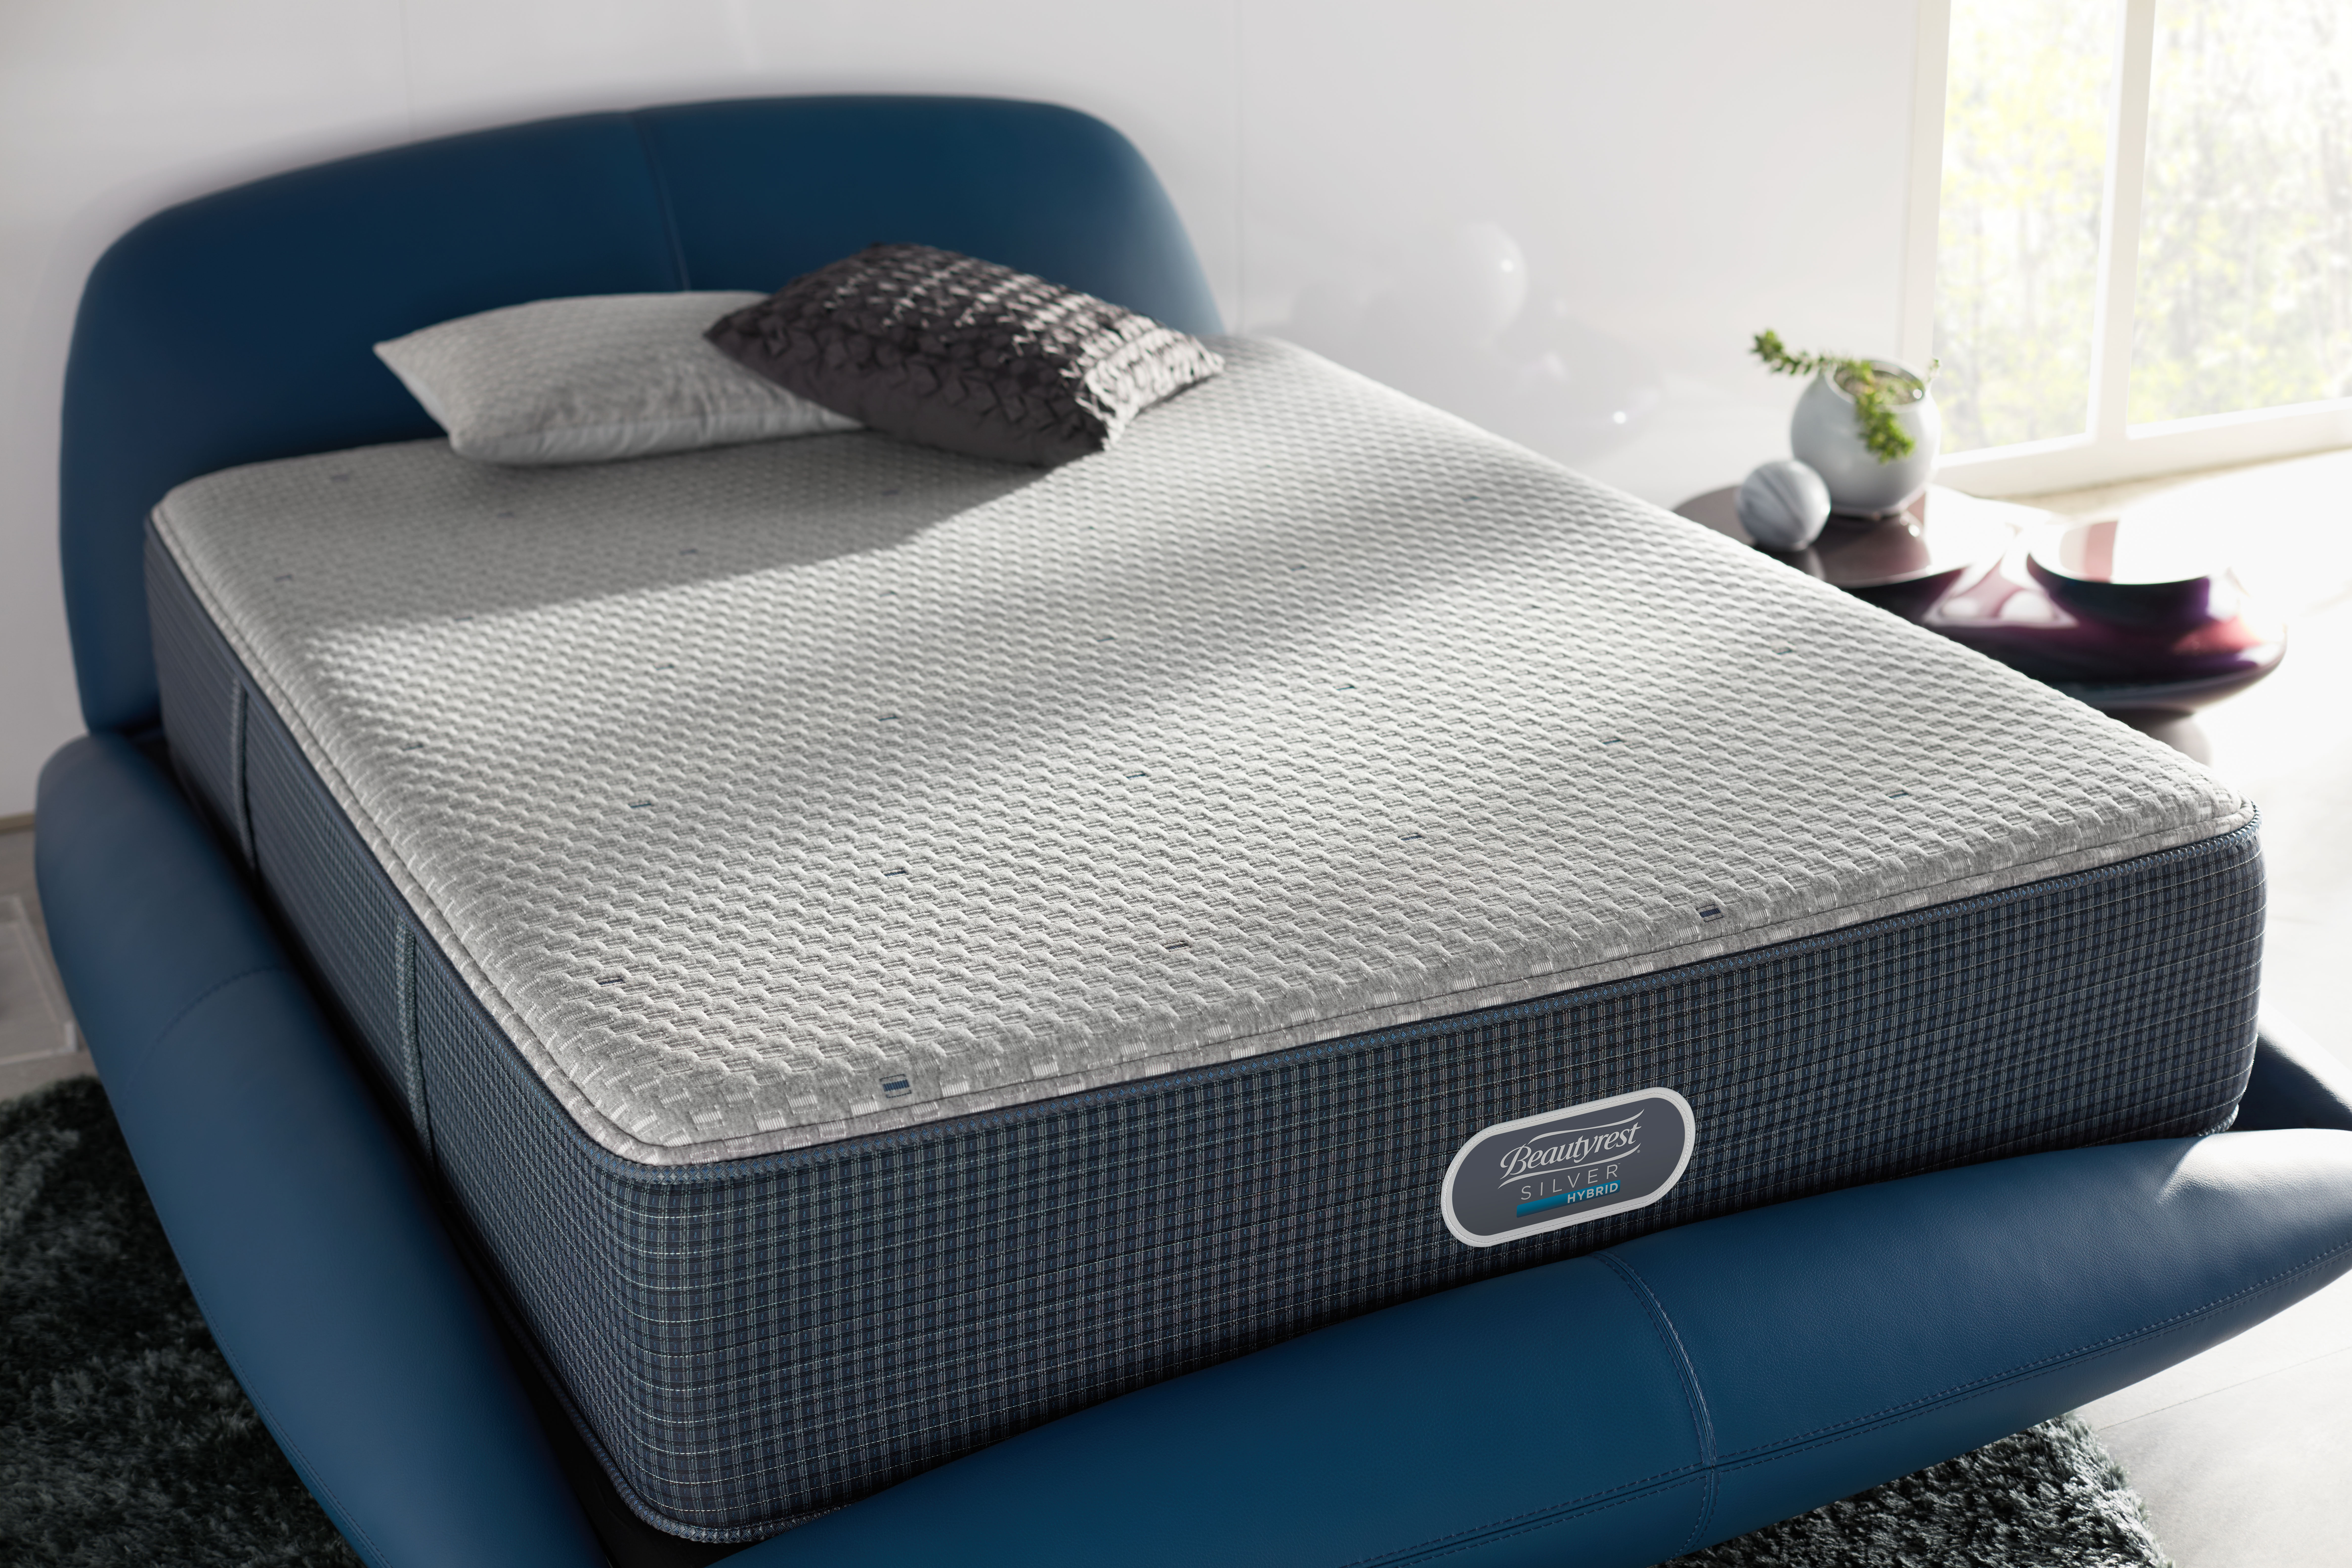 bedding major simmons is replacing its successful beautyrest recharge line with a lineup of 16 innerspring beds that aim to create an - Beautyrest Recharge Hybrid